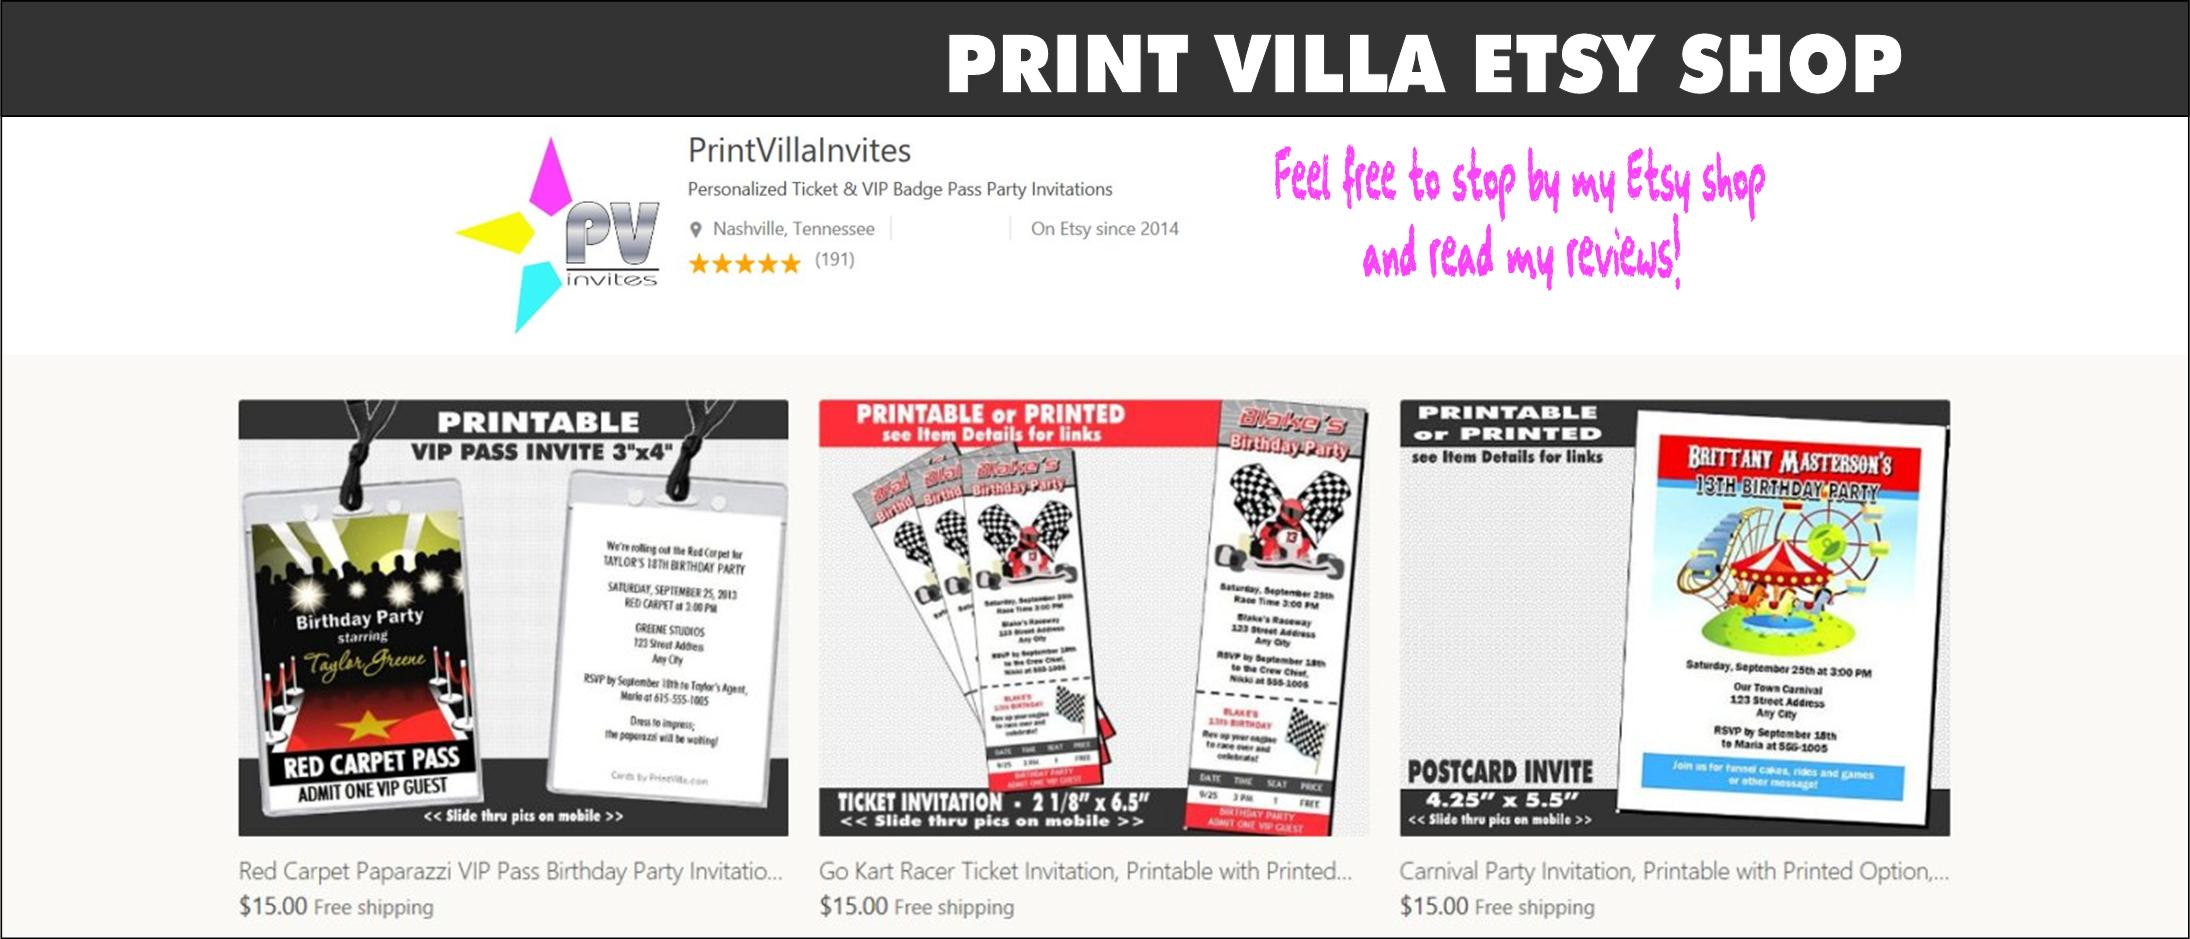 personalized party invitations from print villa